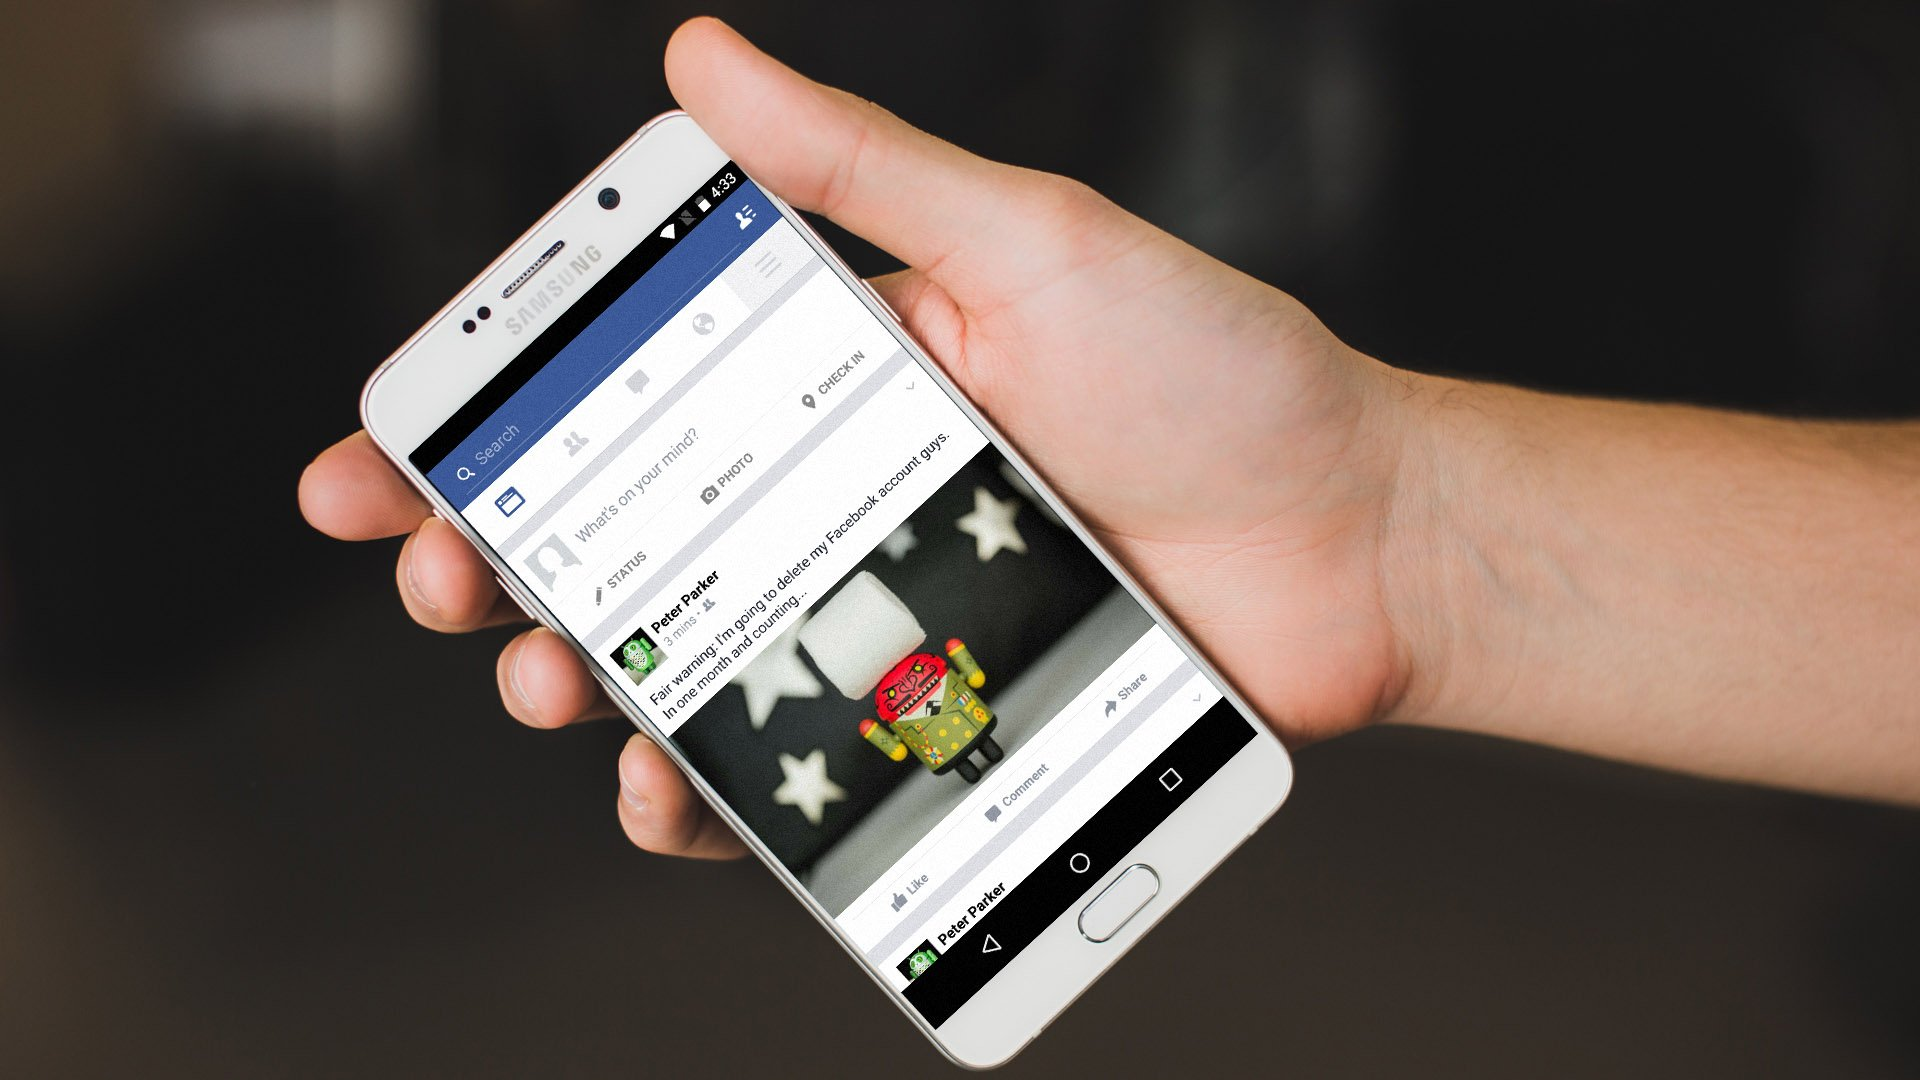 Facebook update: latest news | AndroidPIT